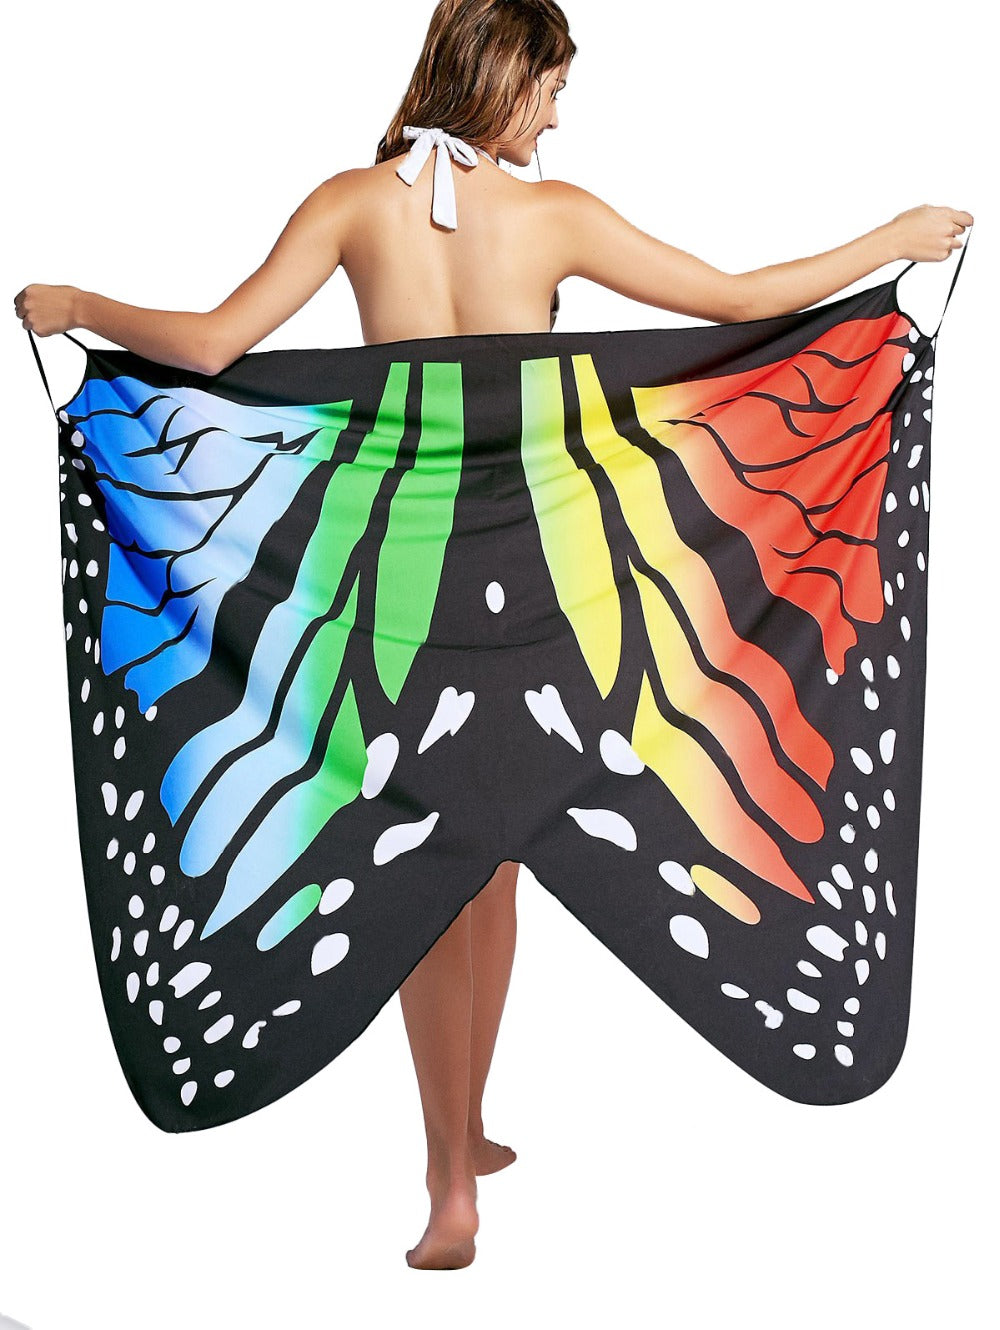 Butterfly Bikini Swimsuit Cover Up